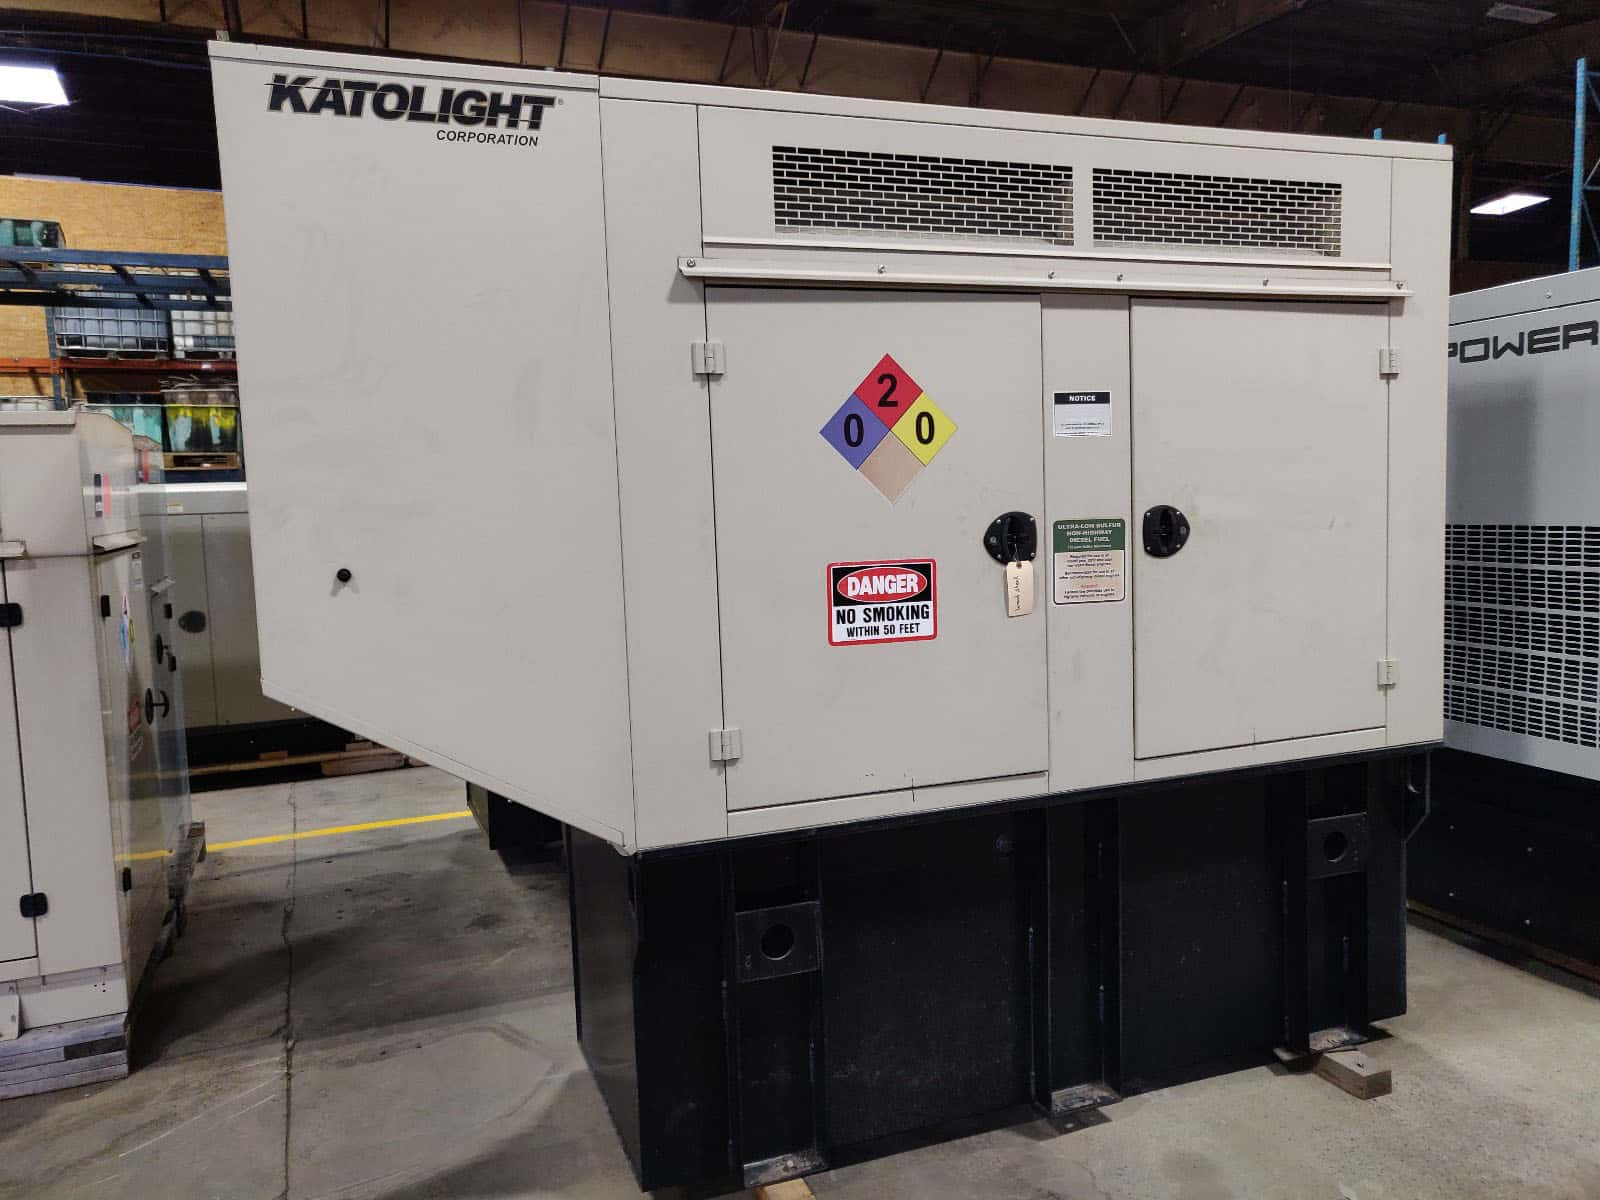 Used 60 kW Katolight/John Deere Diesel Generator – EPA Tier 2 Rated